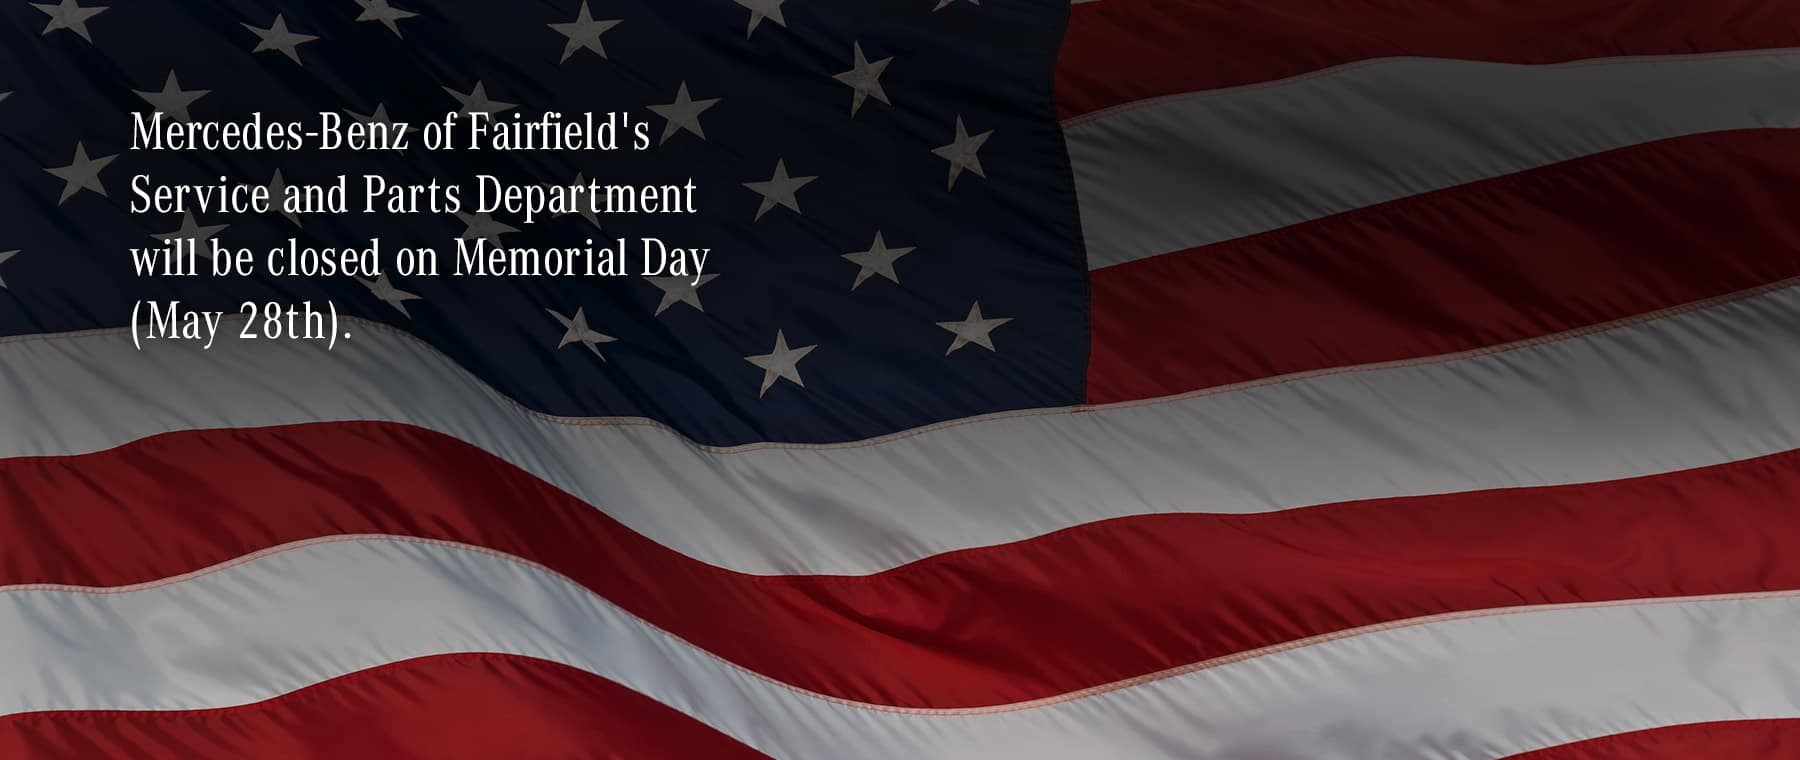 Mercedes-Benz of Fairfield's Service & Parts Department will be closed on Memorial Day